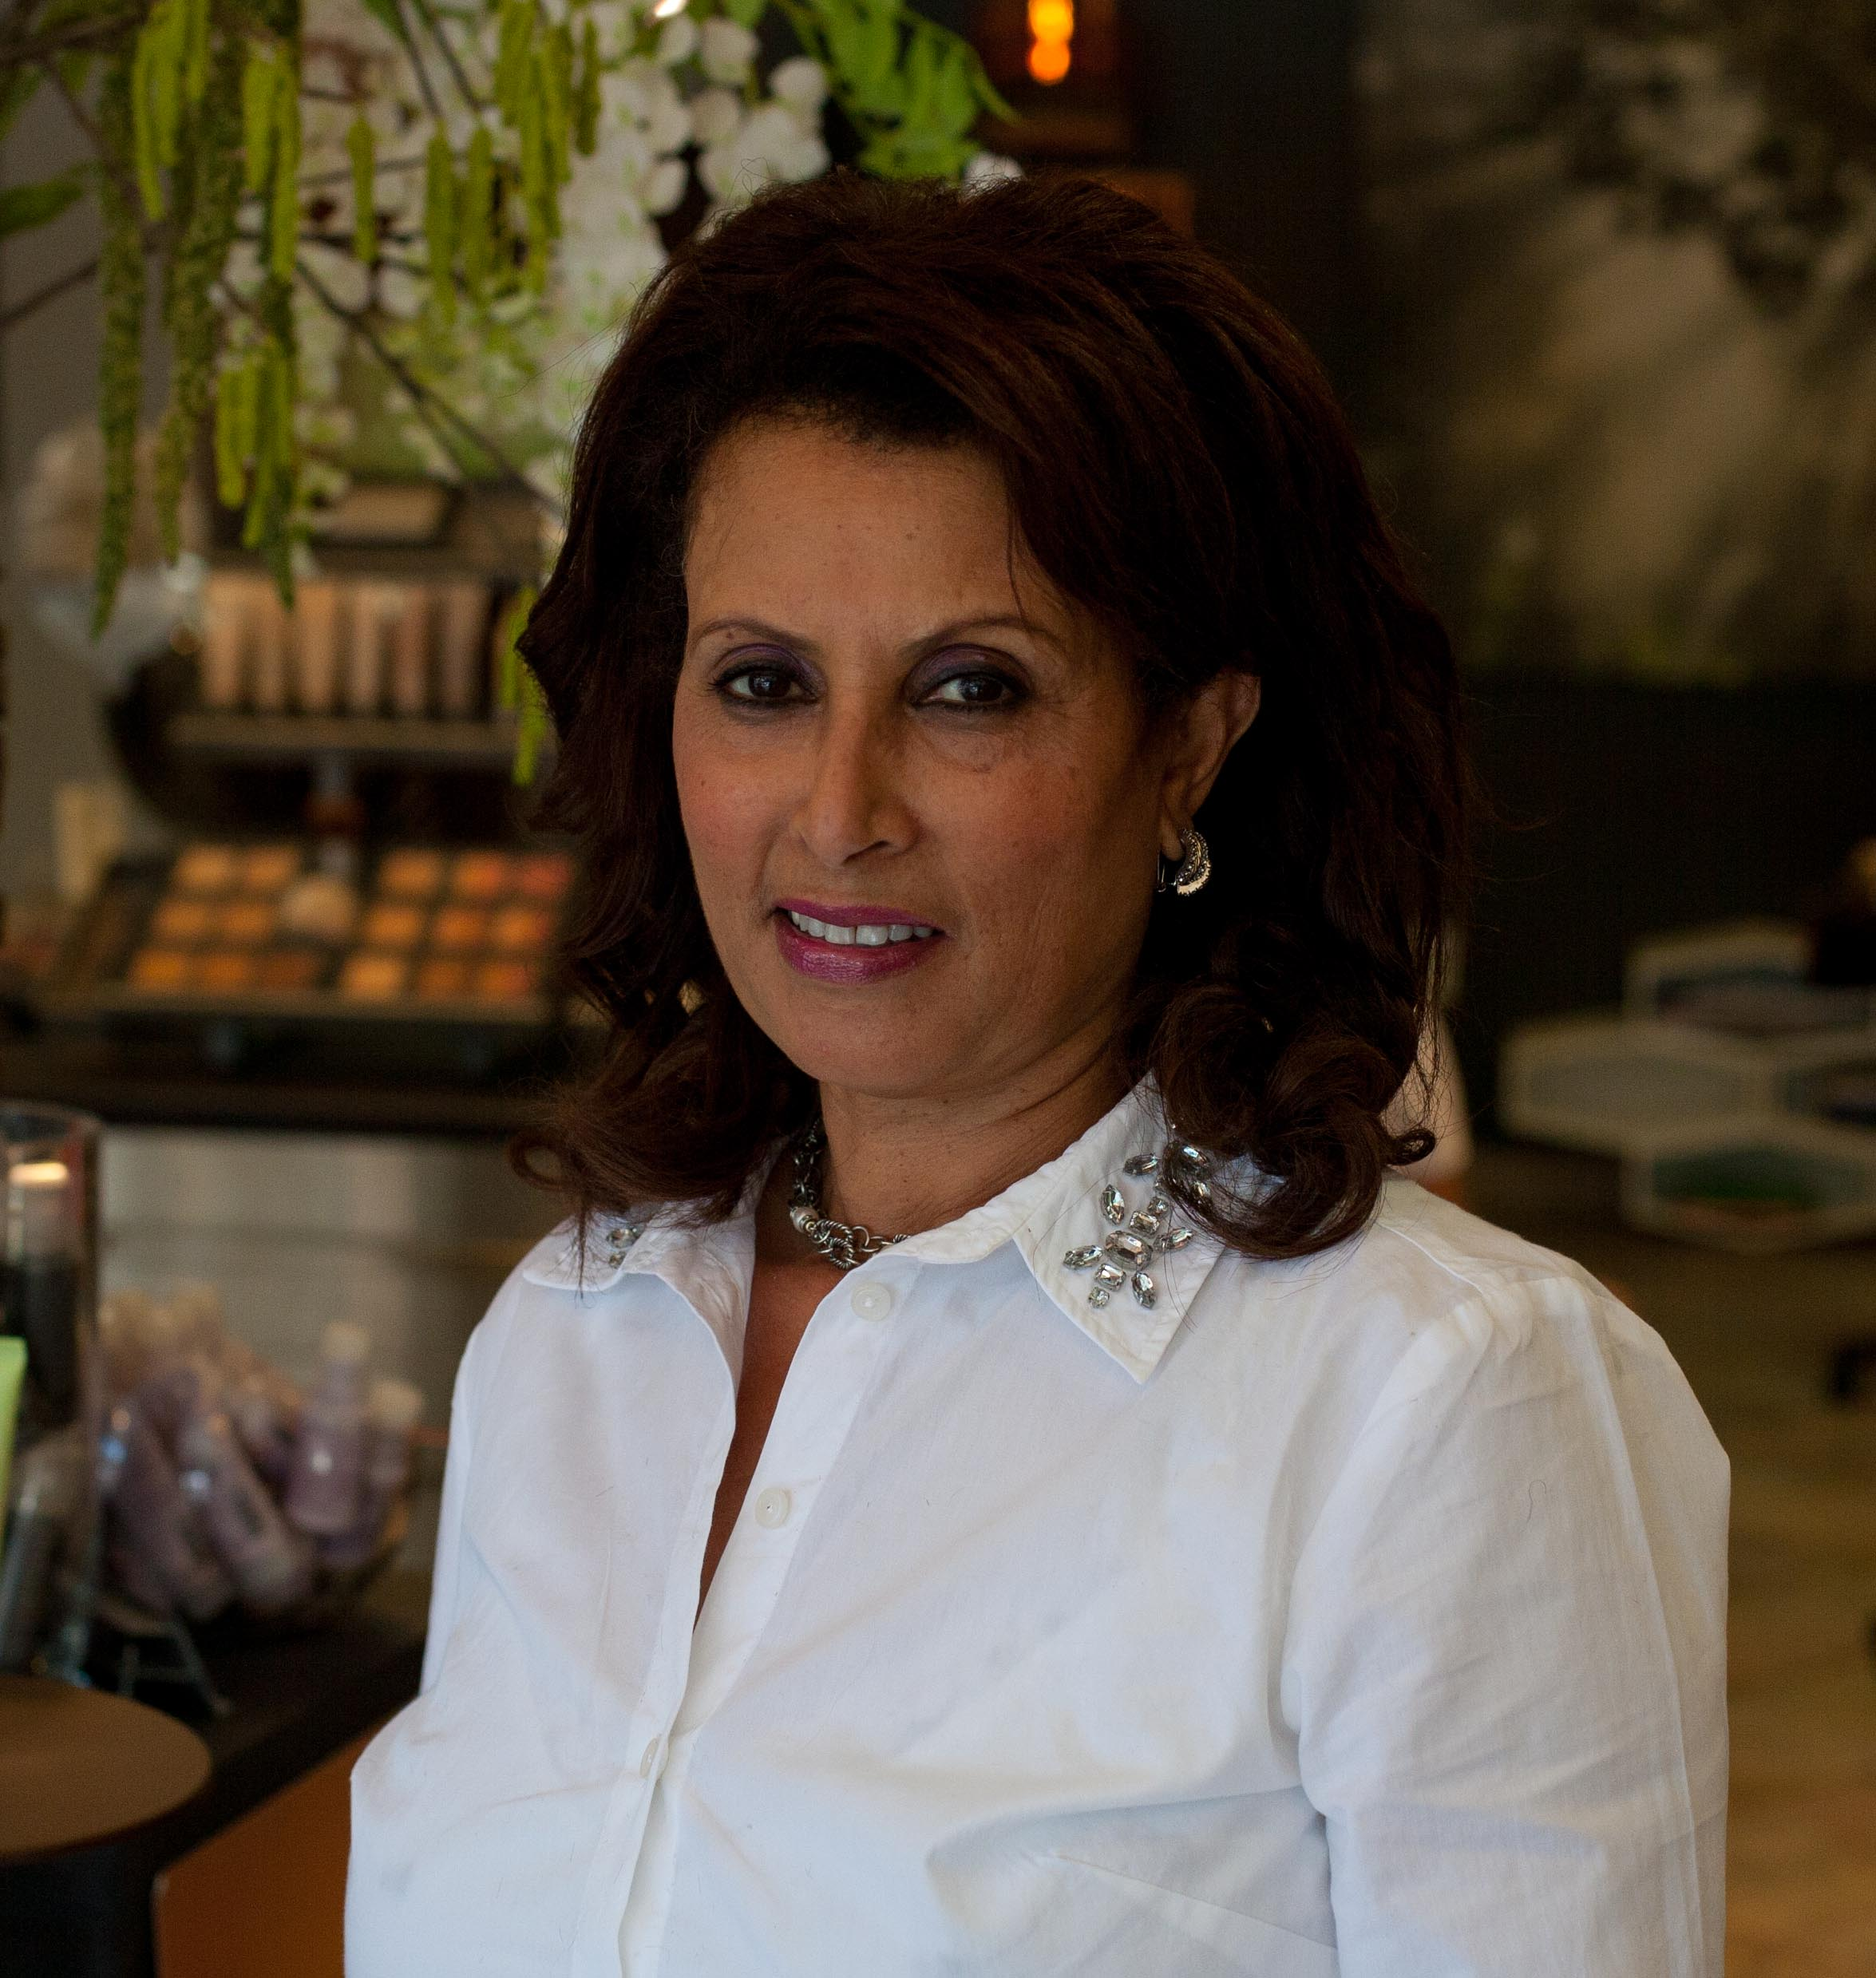 Asrate - With over fifteen years in the industry- Asrate has fully mastered styling techniques. She gets excited about elegant up-dos and iridescent, dimensional color. As a licensed aesthetician, she loves the effects of Aveda's exfoliation.